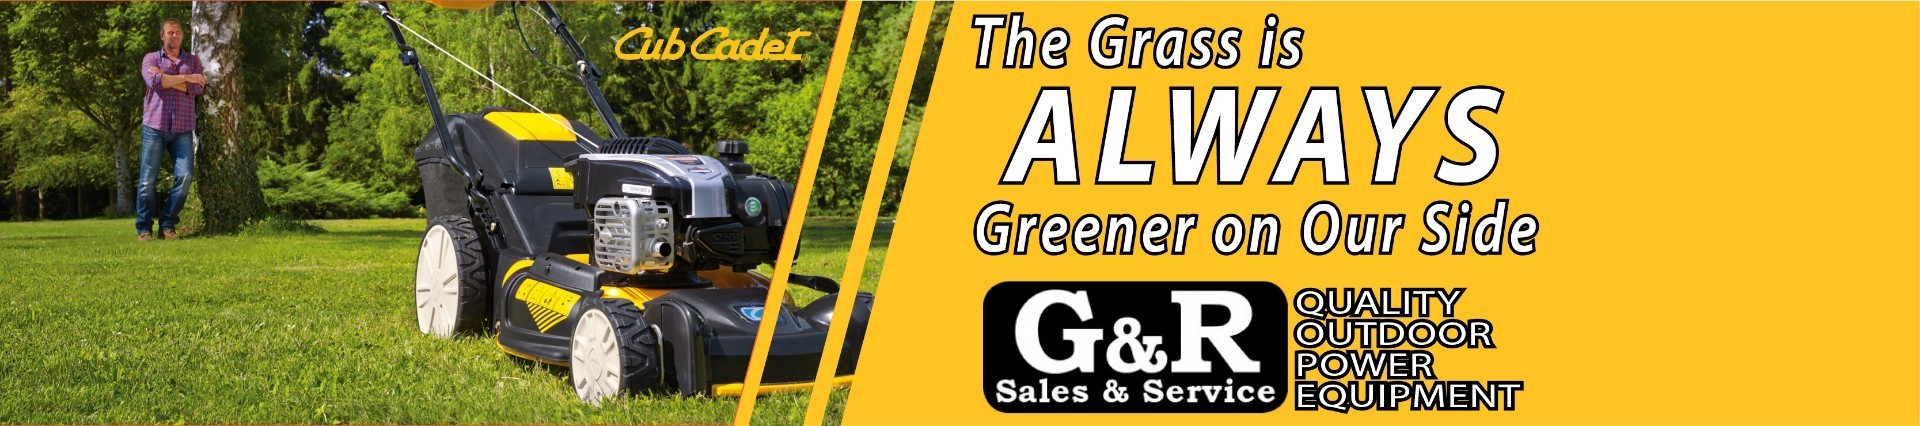 G & R Sales and Service